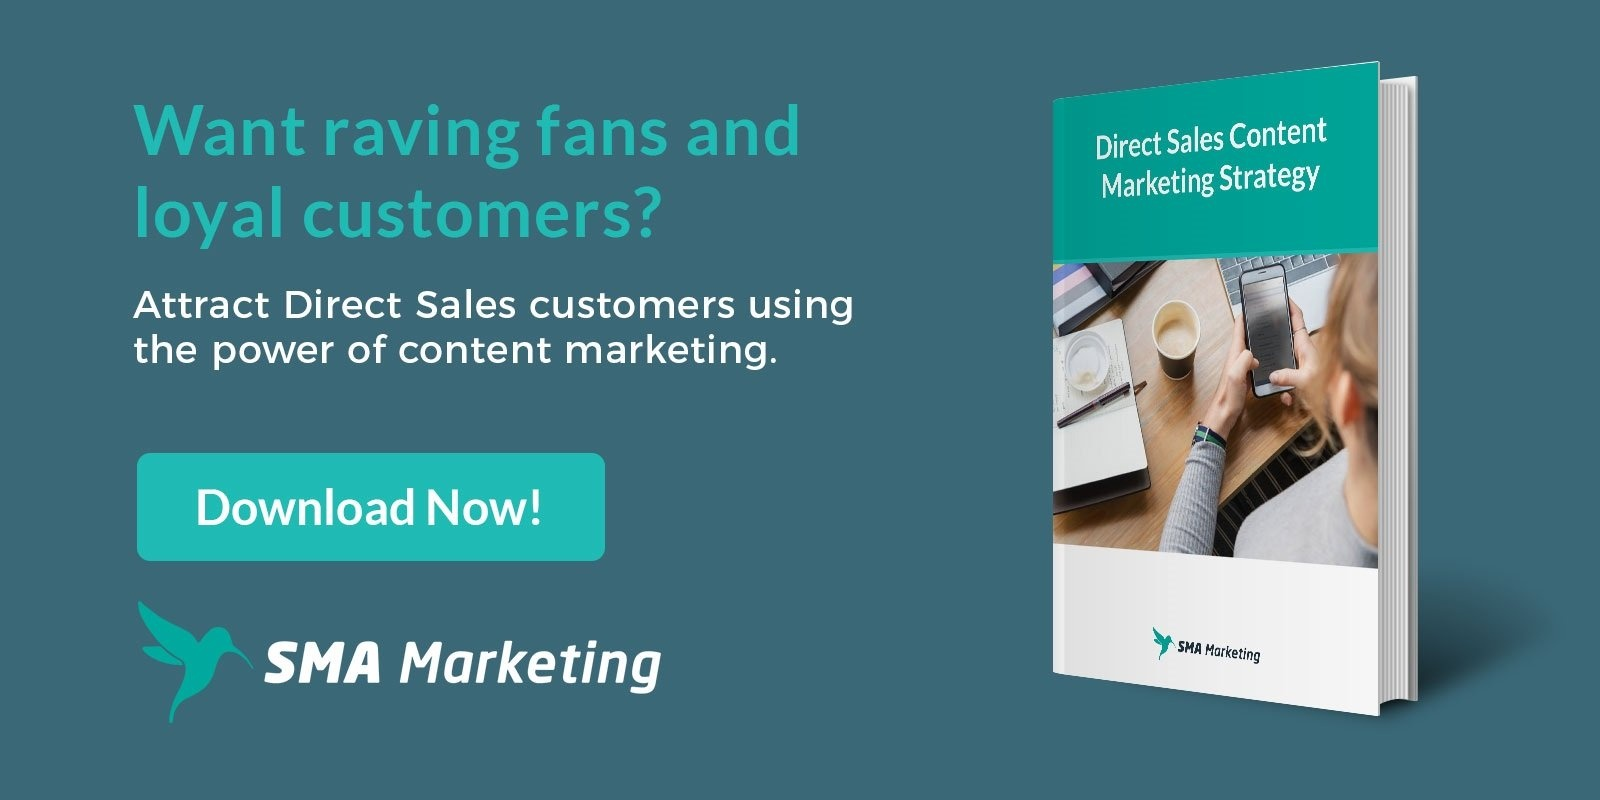 direct sales content marketing strategy